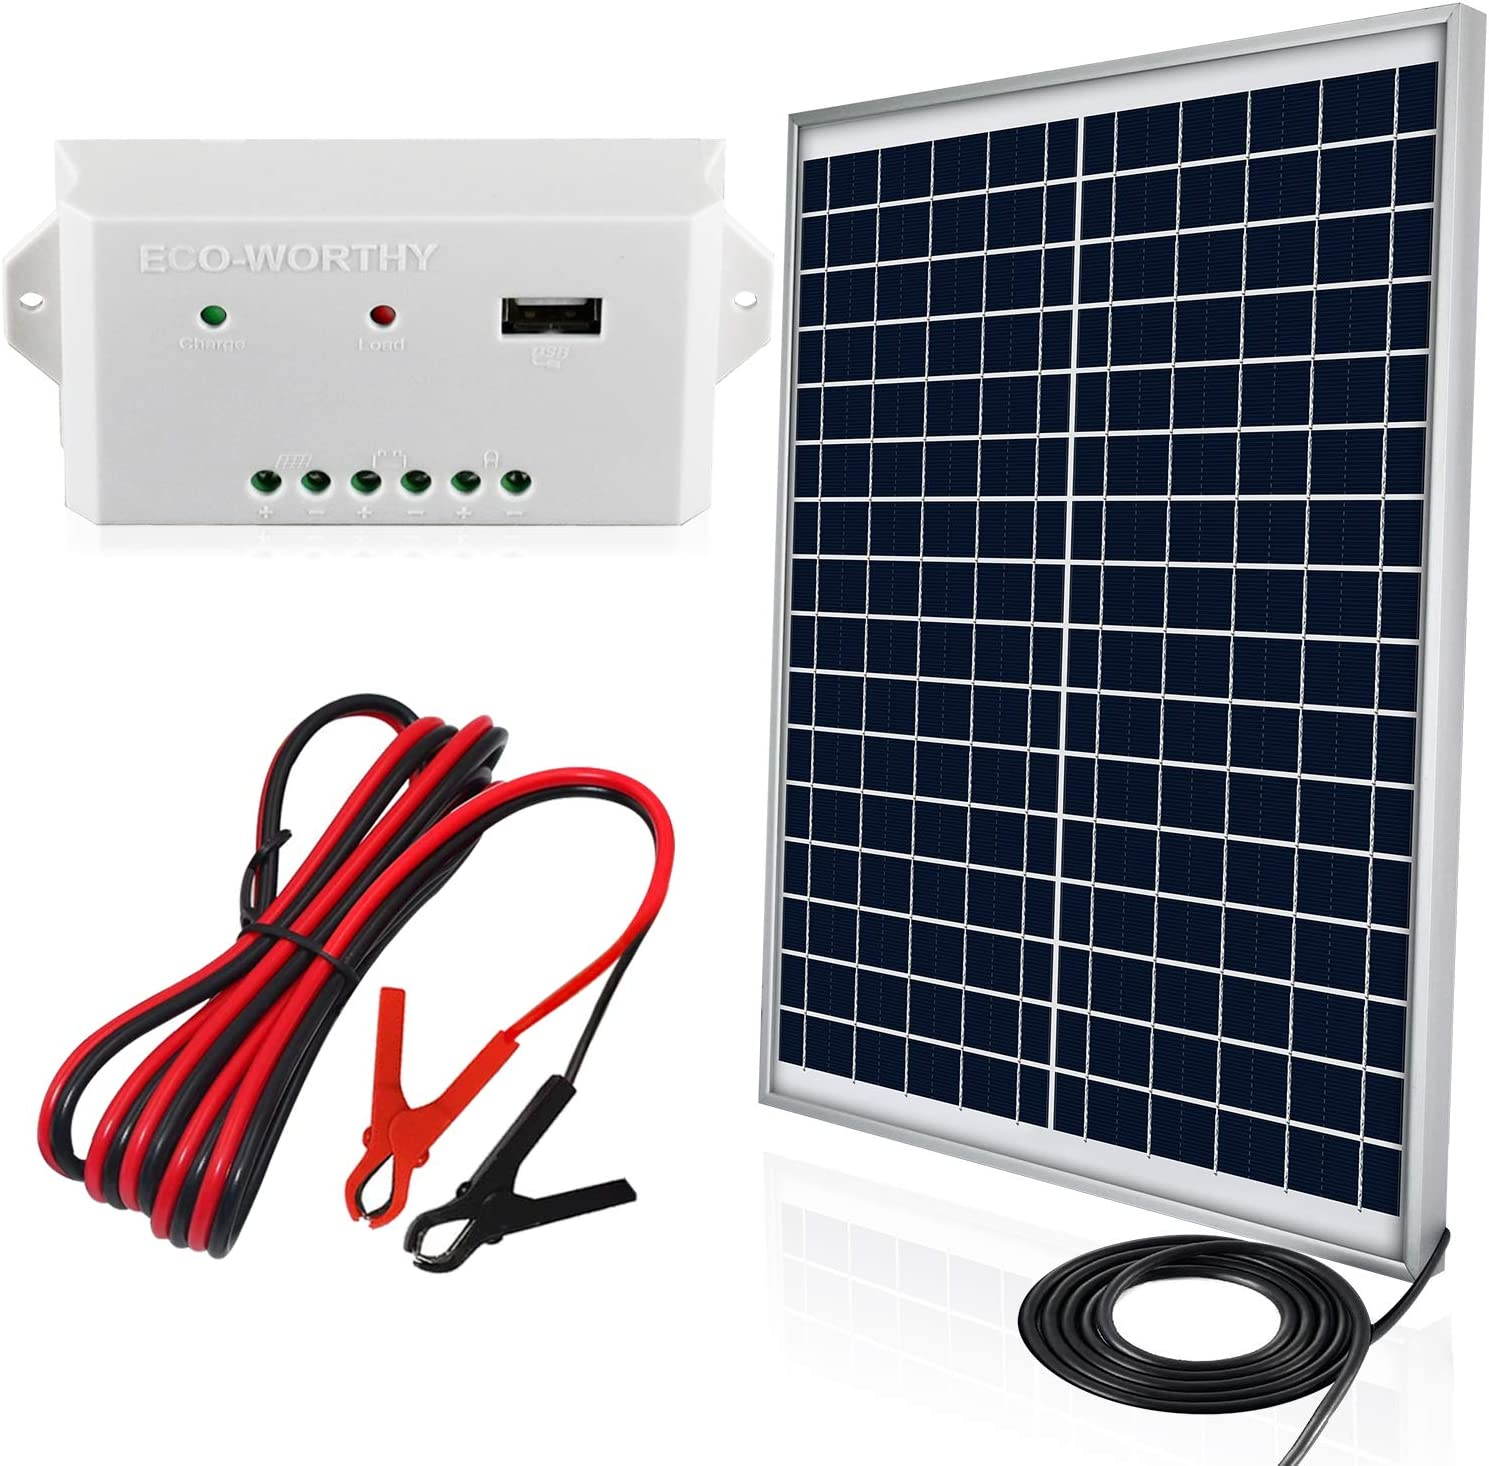 eco worthy 20 watts 12v solar panel kit waterproof 20w solar panel 3a usb port charge controller 6 feet isolated battery clips how to connect a solar panel to a 12 volt battery tiny house 12volt wiring youtube